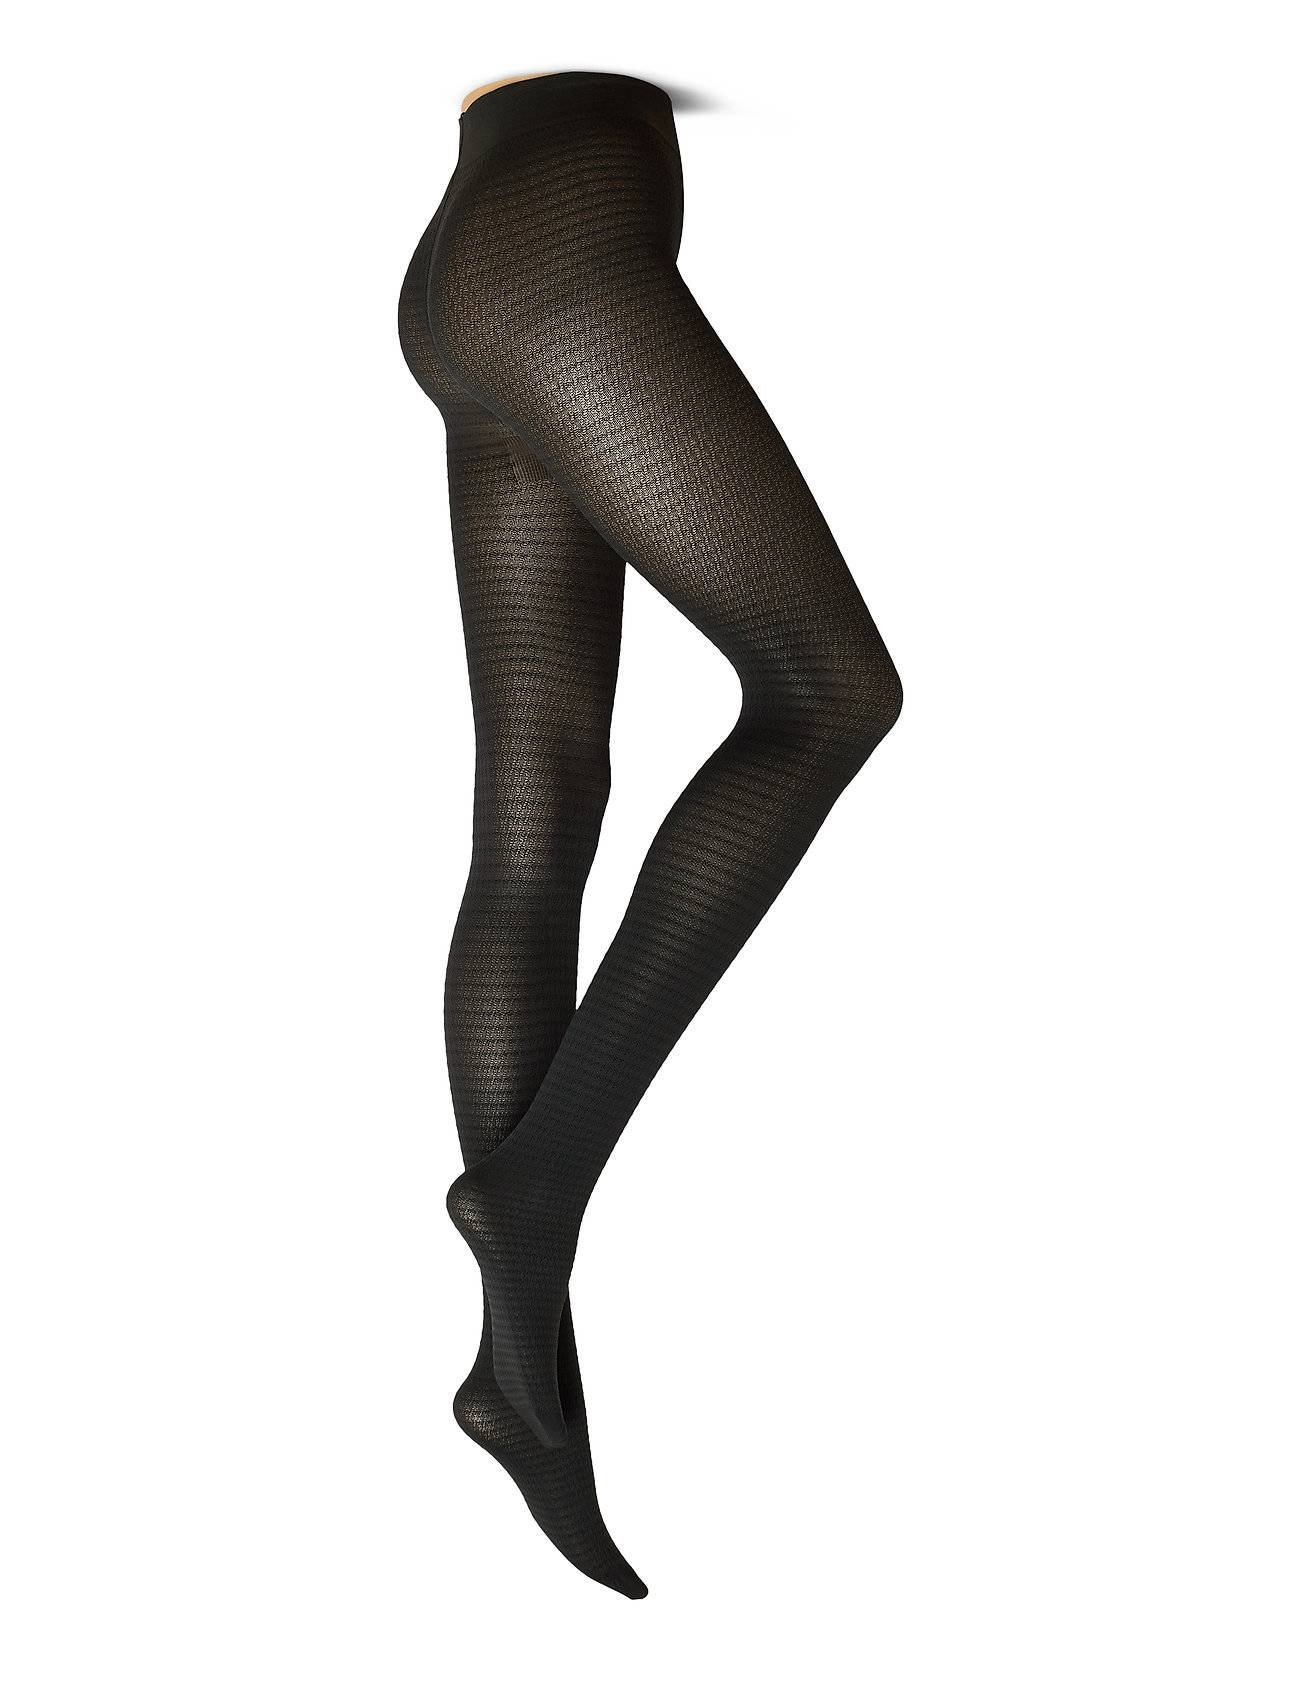 Swedish Stockings Agnes Houndstooth Tights Running/training Tights Musta Swedish Stockings